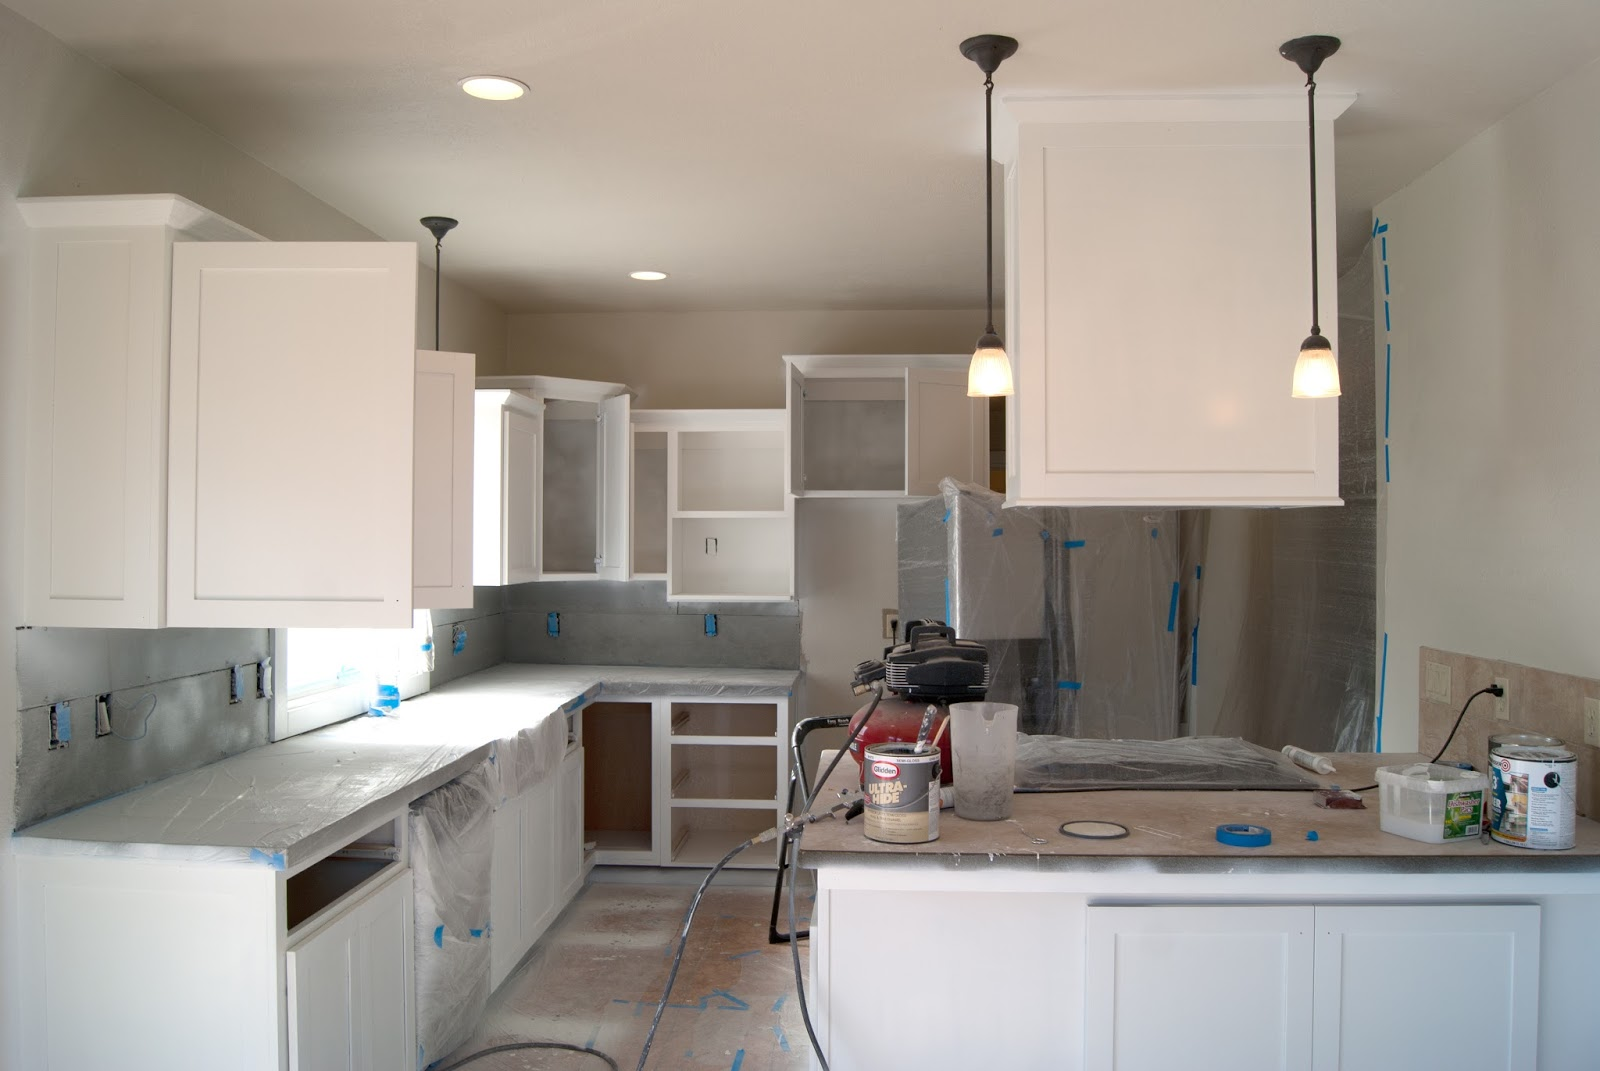 painting the kitchen cabinets primer paint averie paint kitchen cabinets